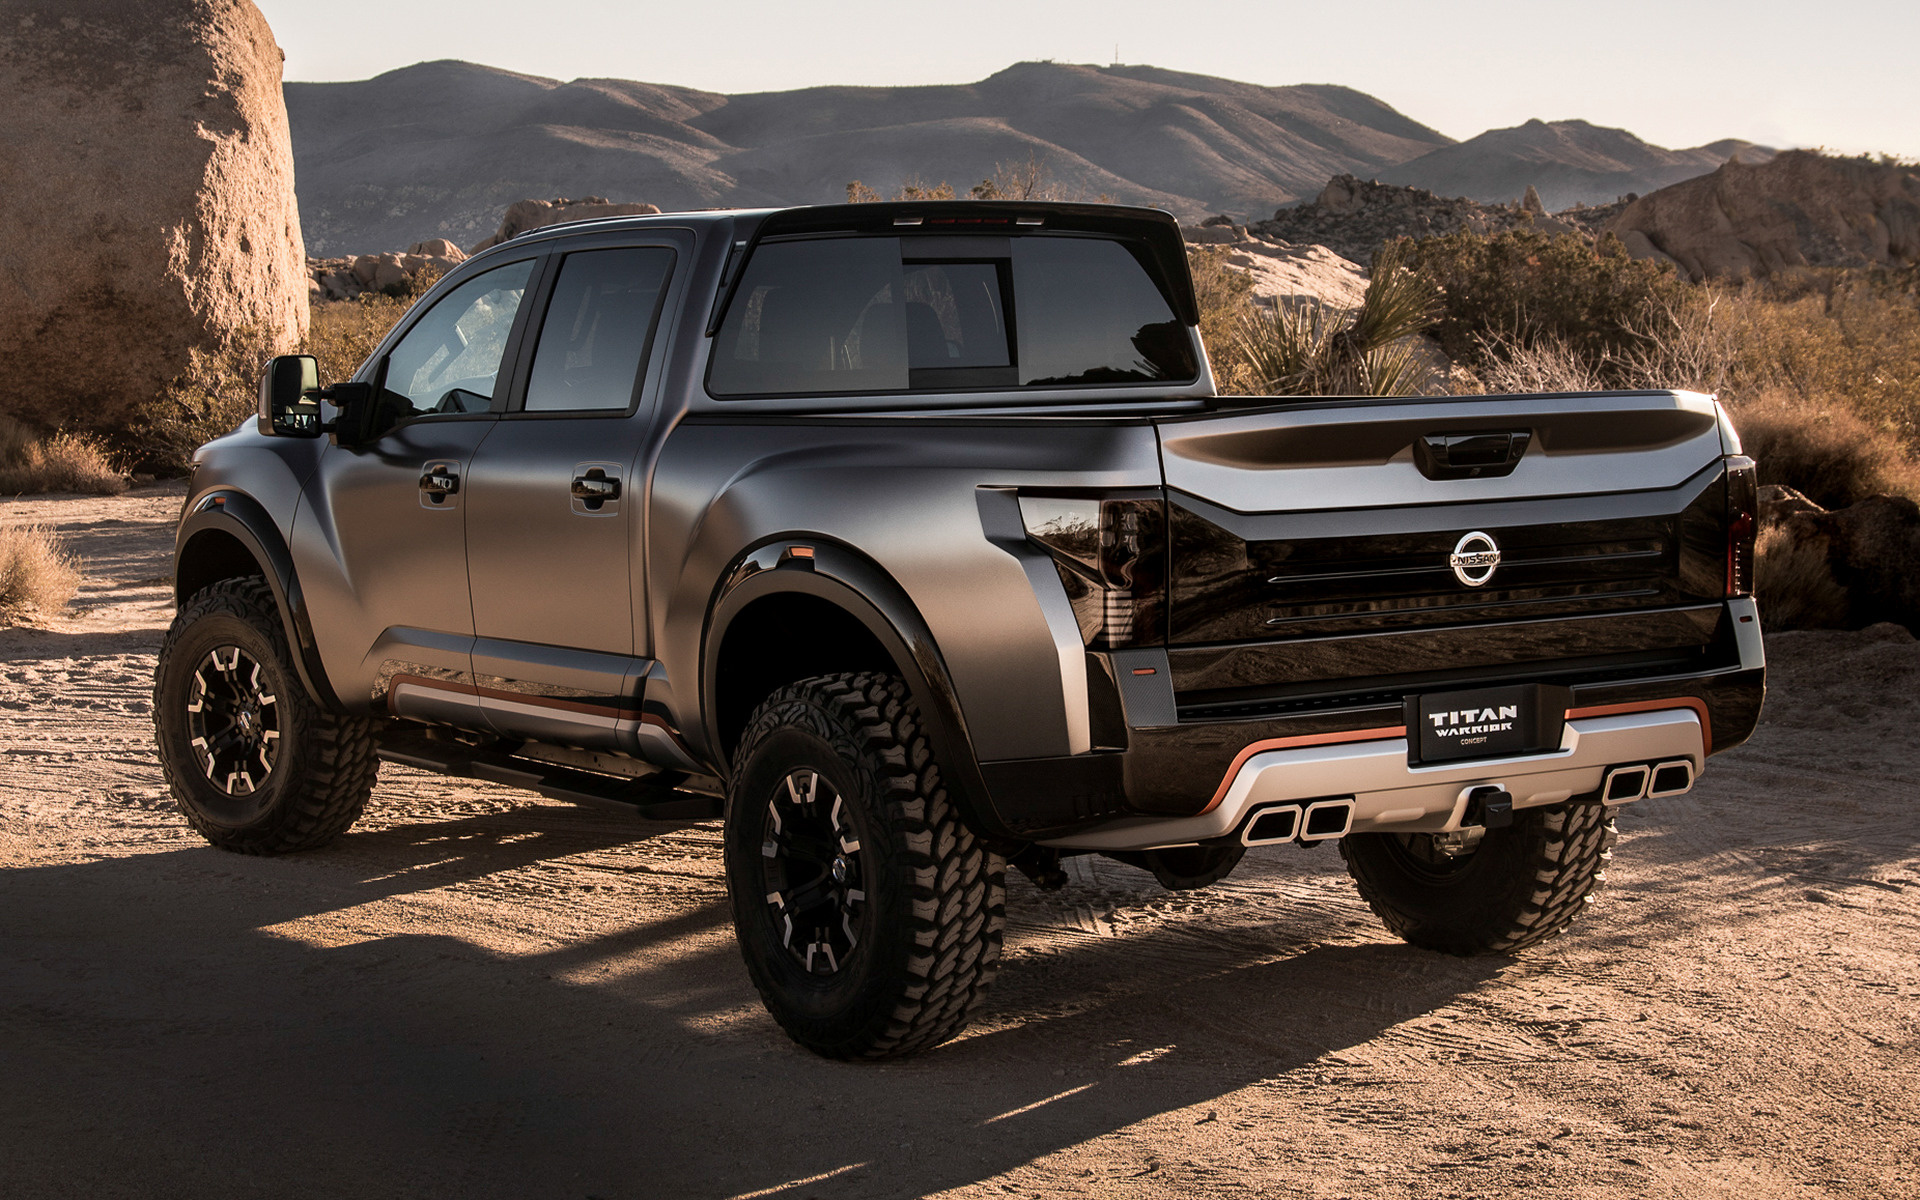 Chevrolet Pick Up >> 2016 Nissan Titan Warrior Concept - Wallpapers and HD Images | Car Pixel